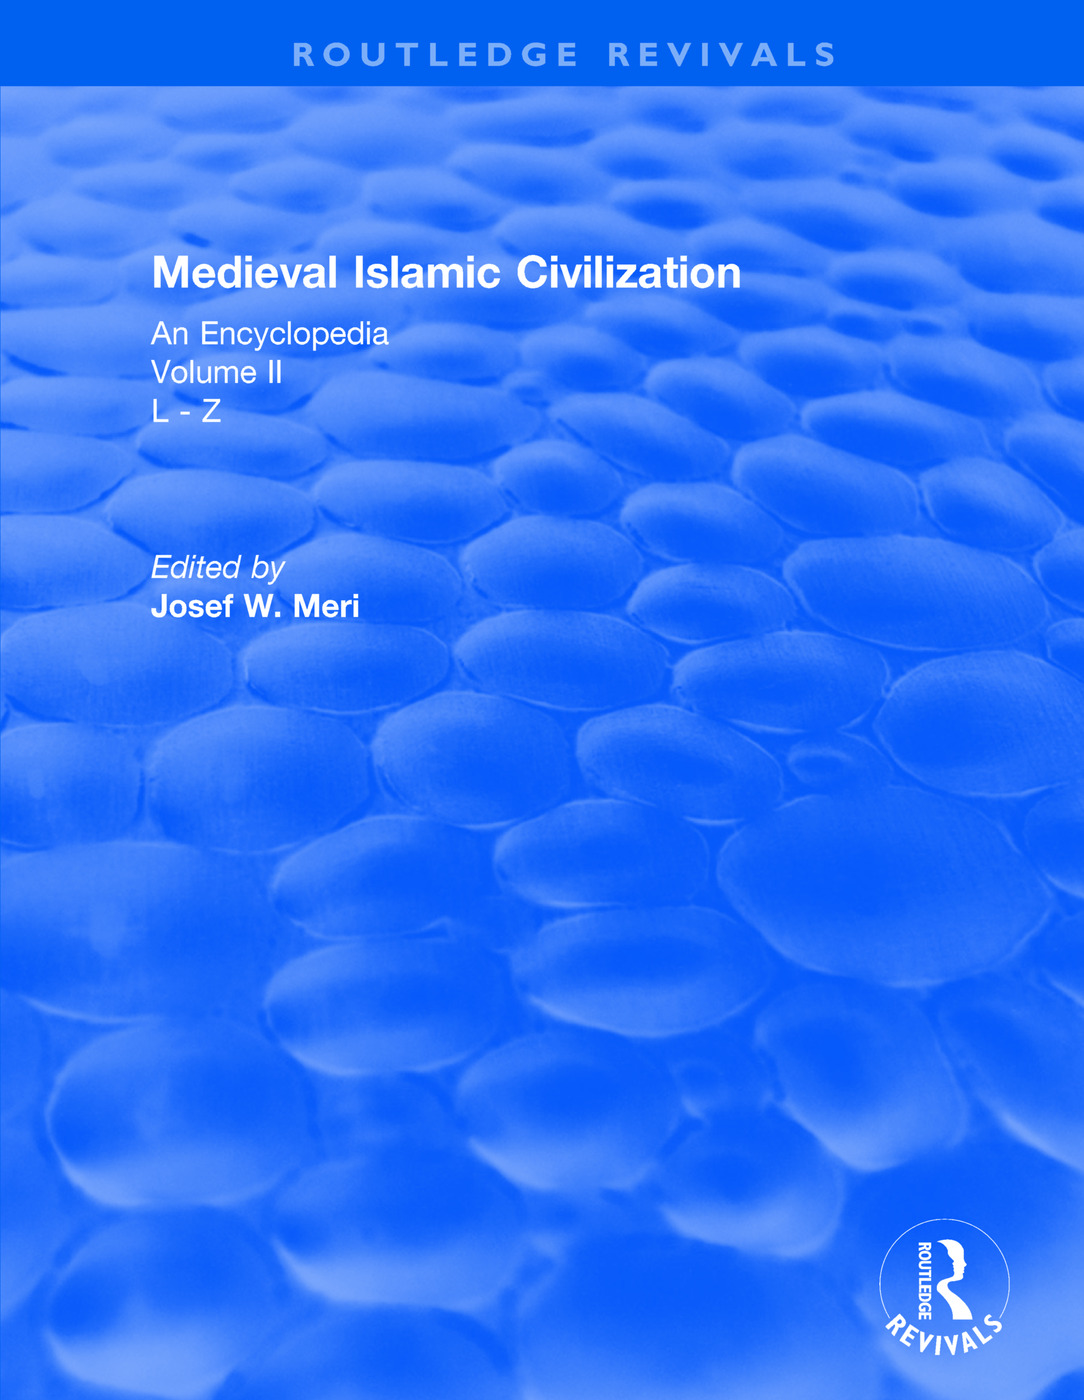 Medieval Islamic Civilization